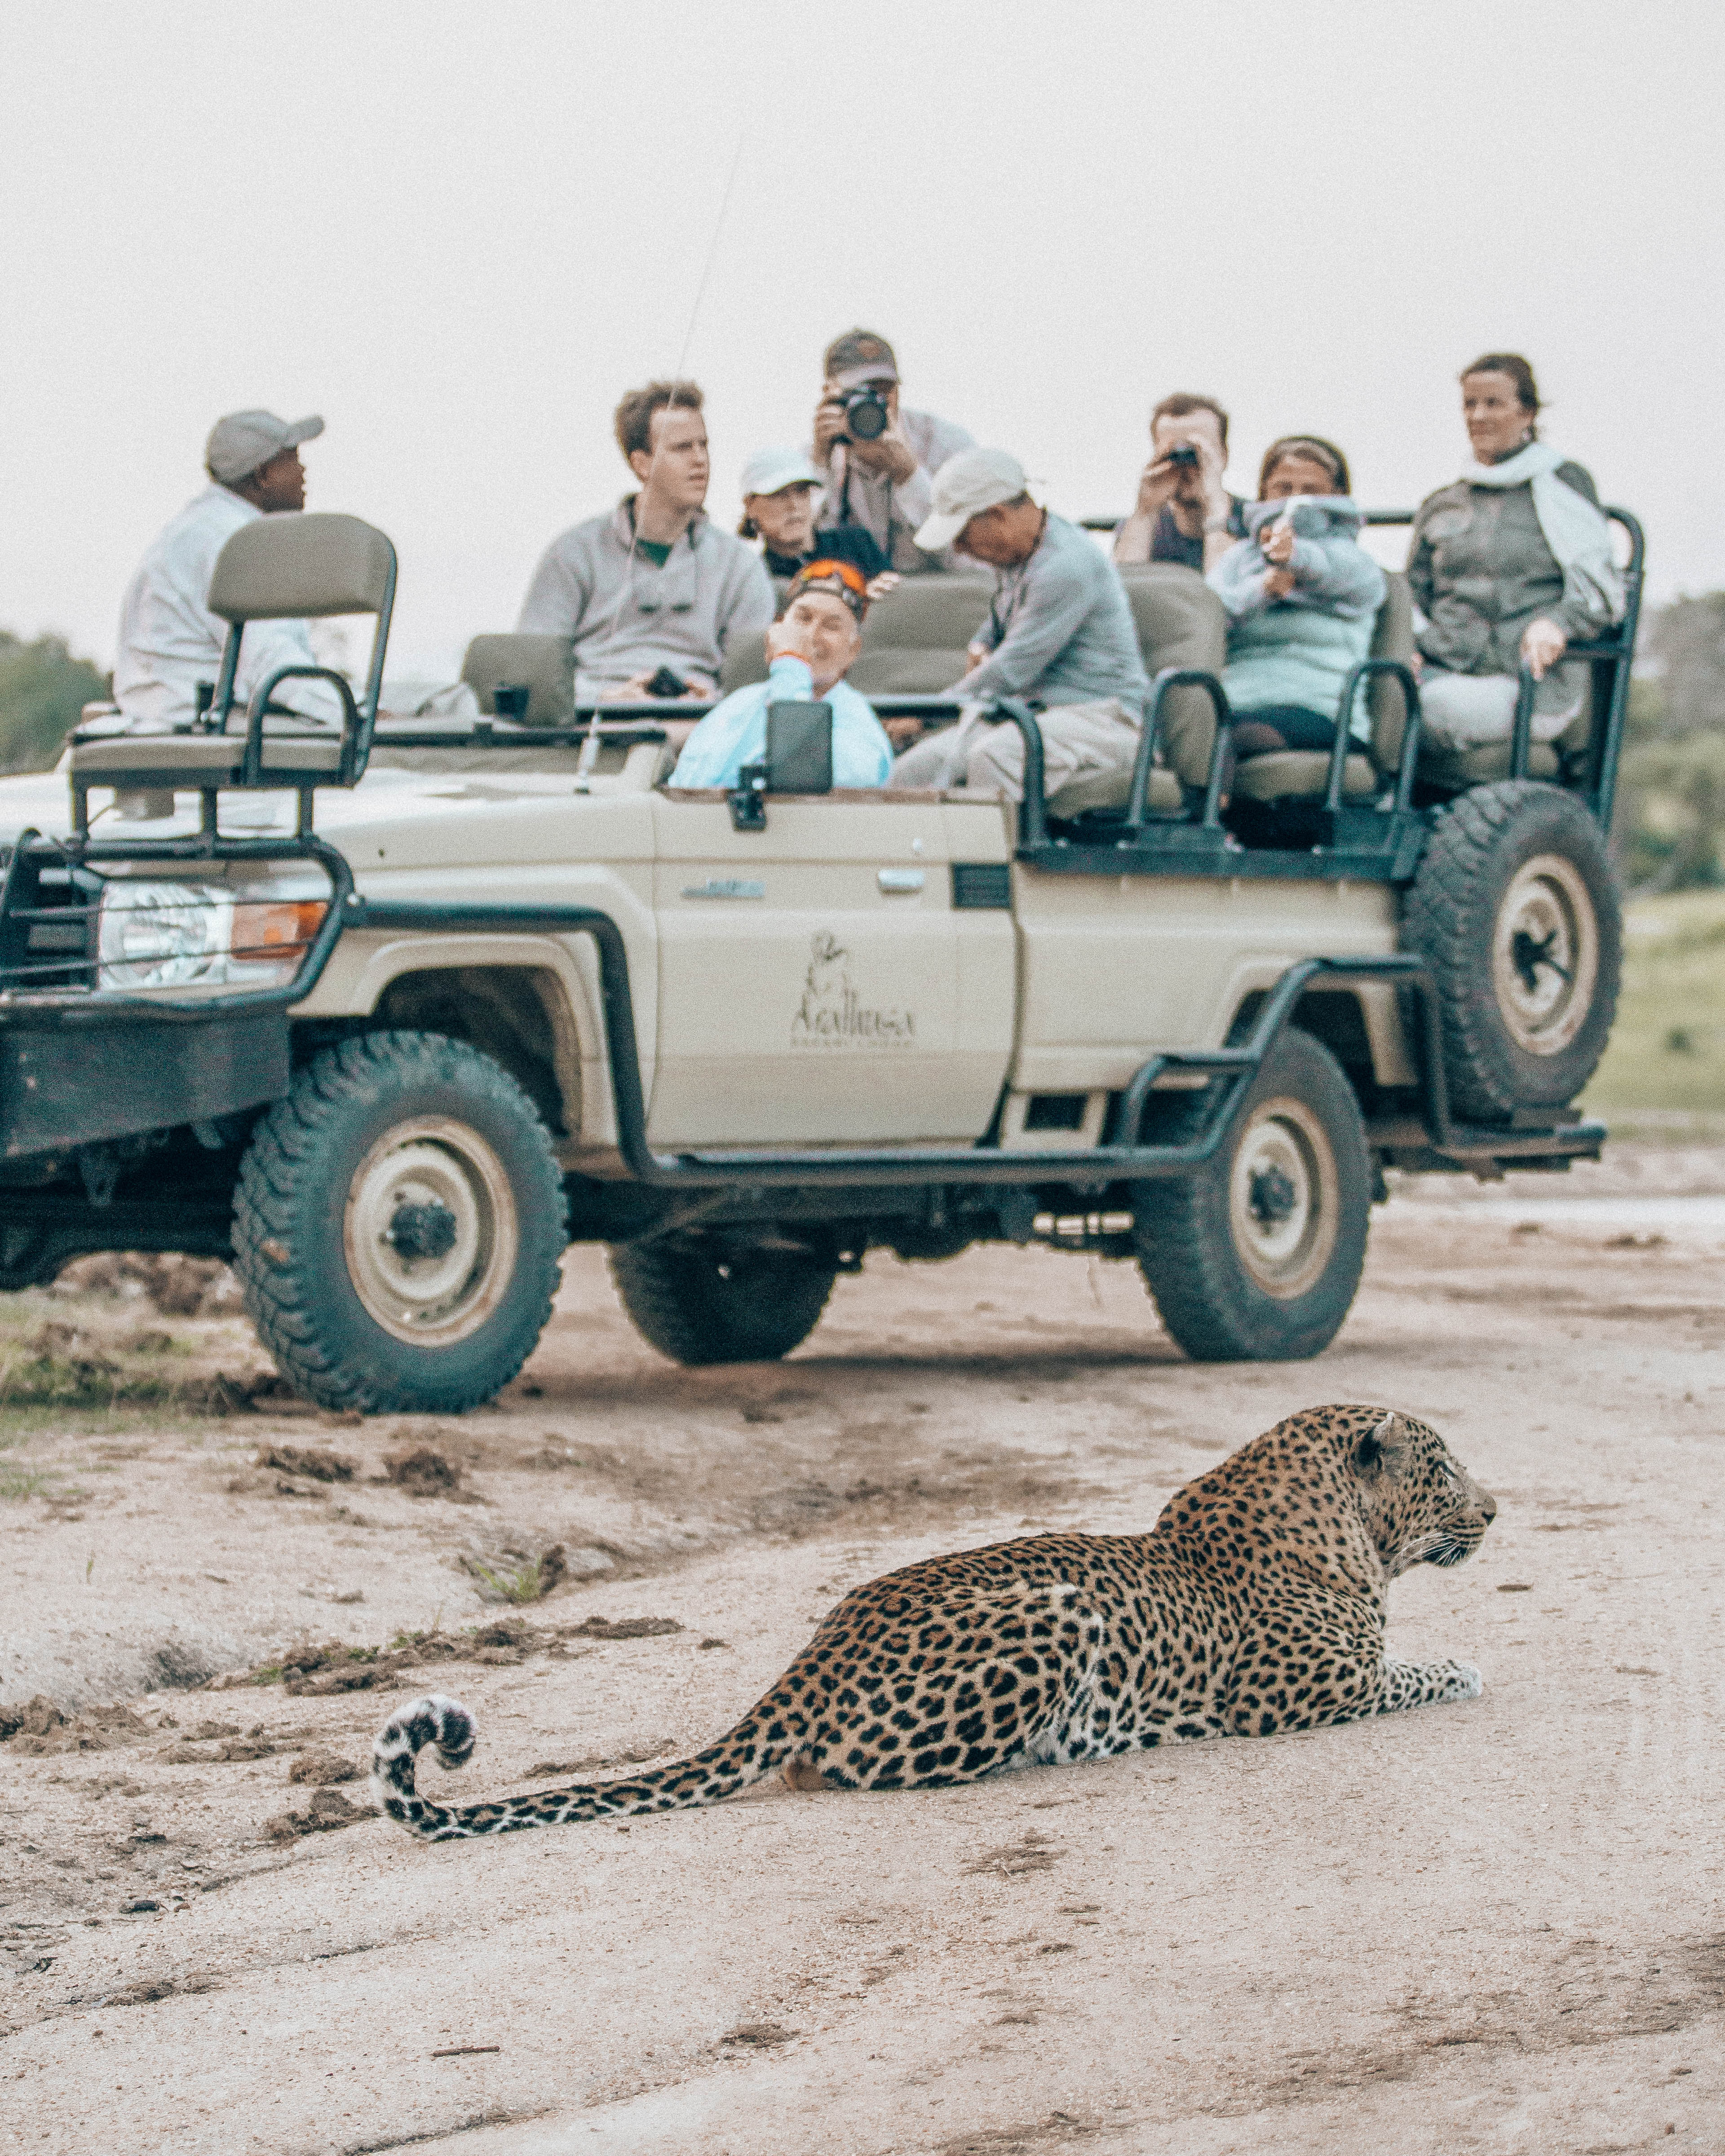 The perspective of the safari vehicle and the animals.